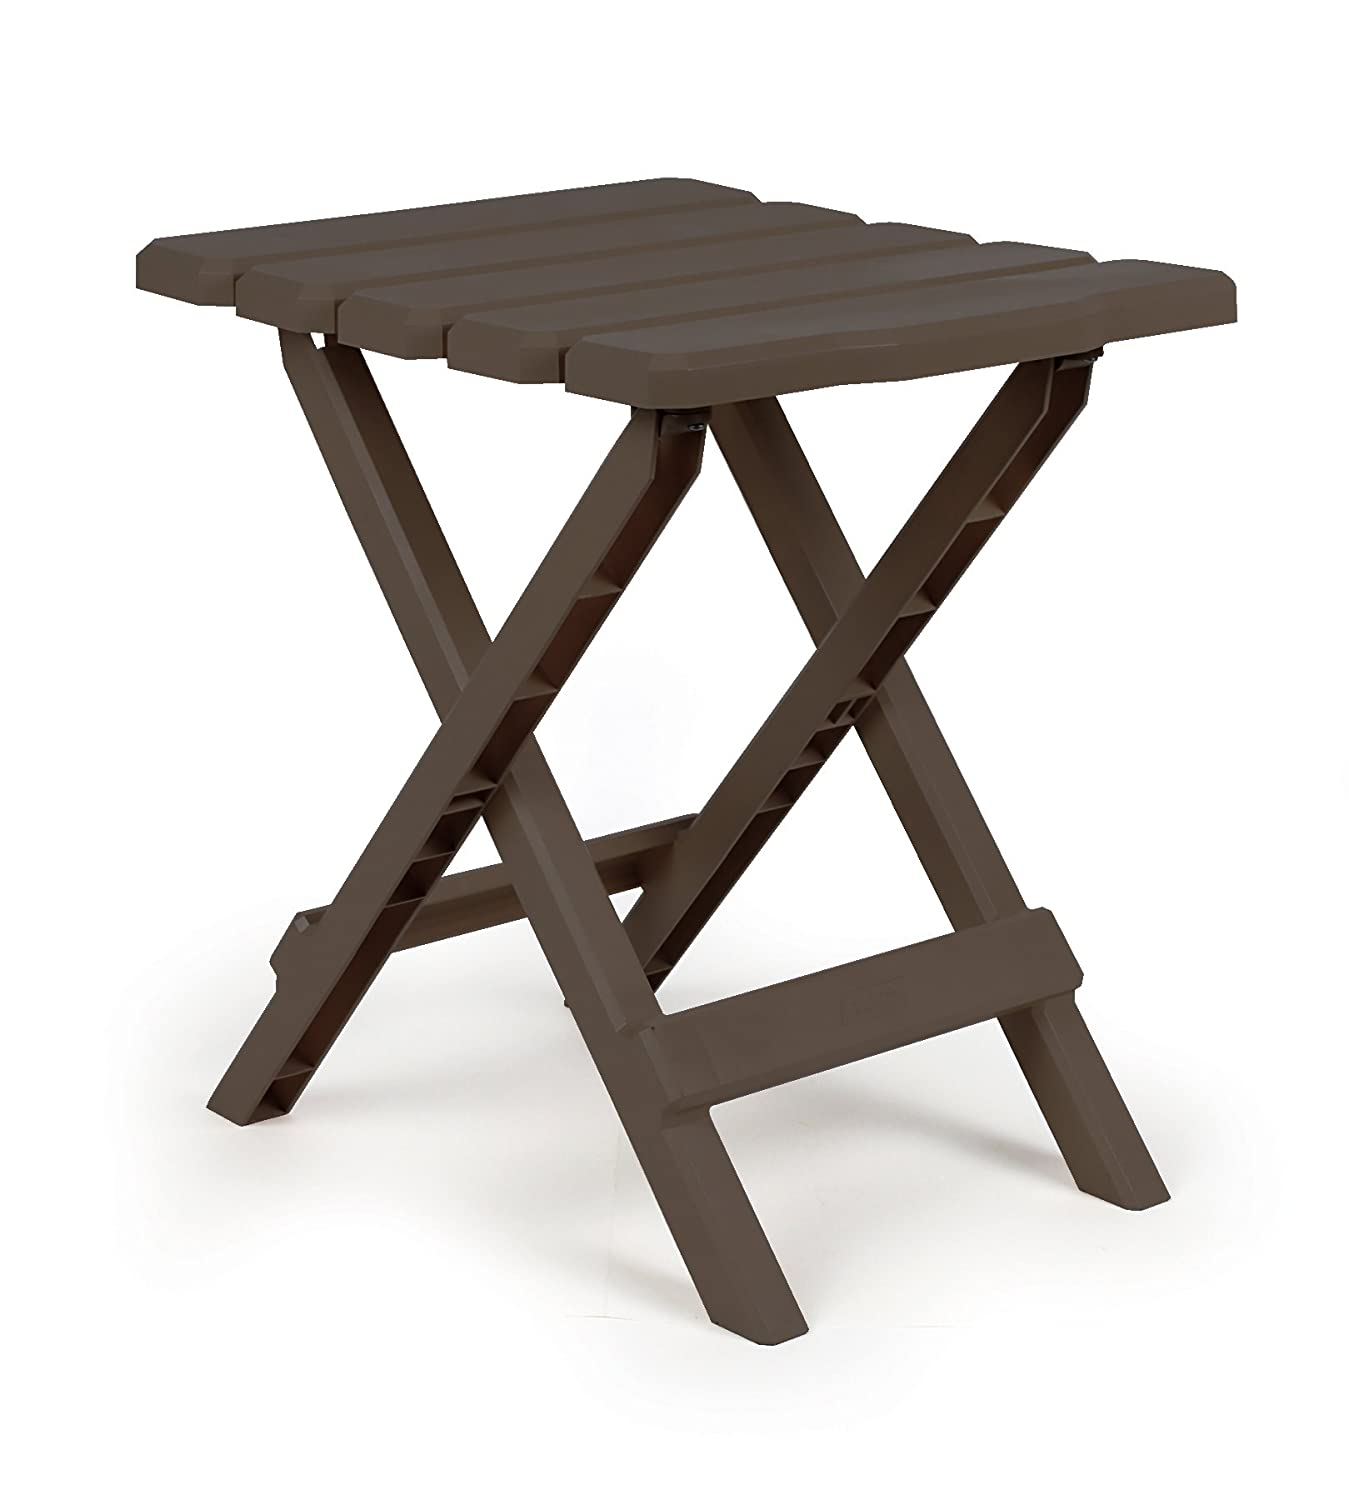 Etonnant Amazon.com: Camco Adirondack Portable Outdoor Folding Side Table, Perfect  For The Beach, Camping, Picnics, Cookouts And More, Weatherproof And Rust  ...